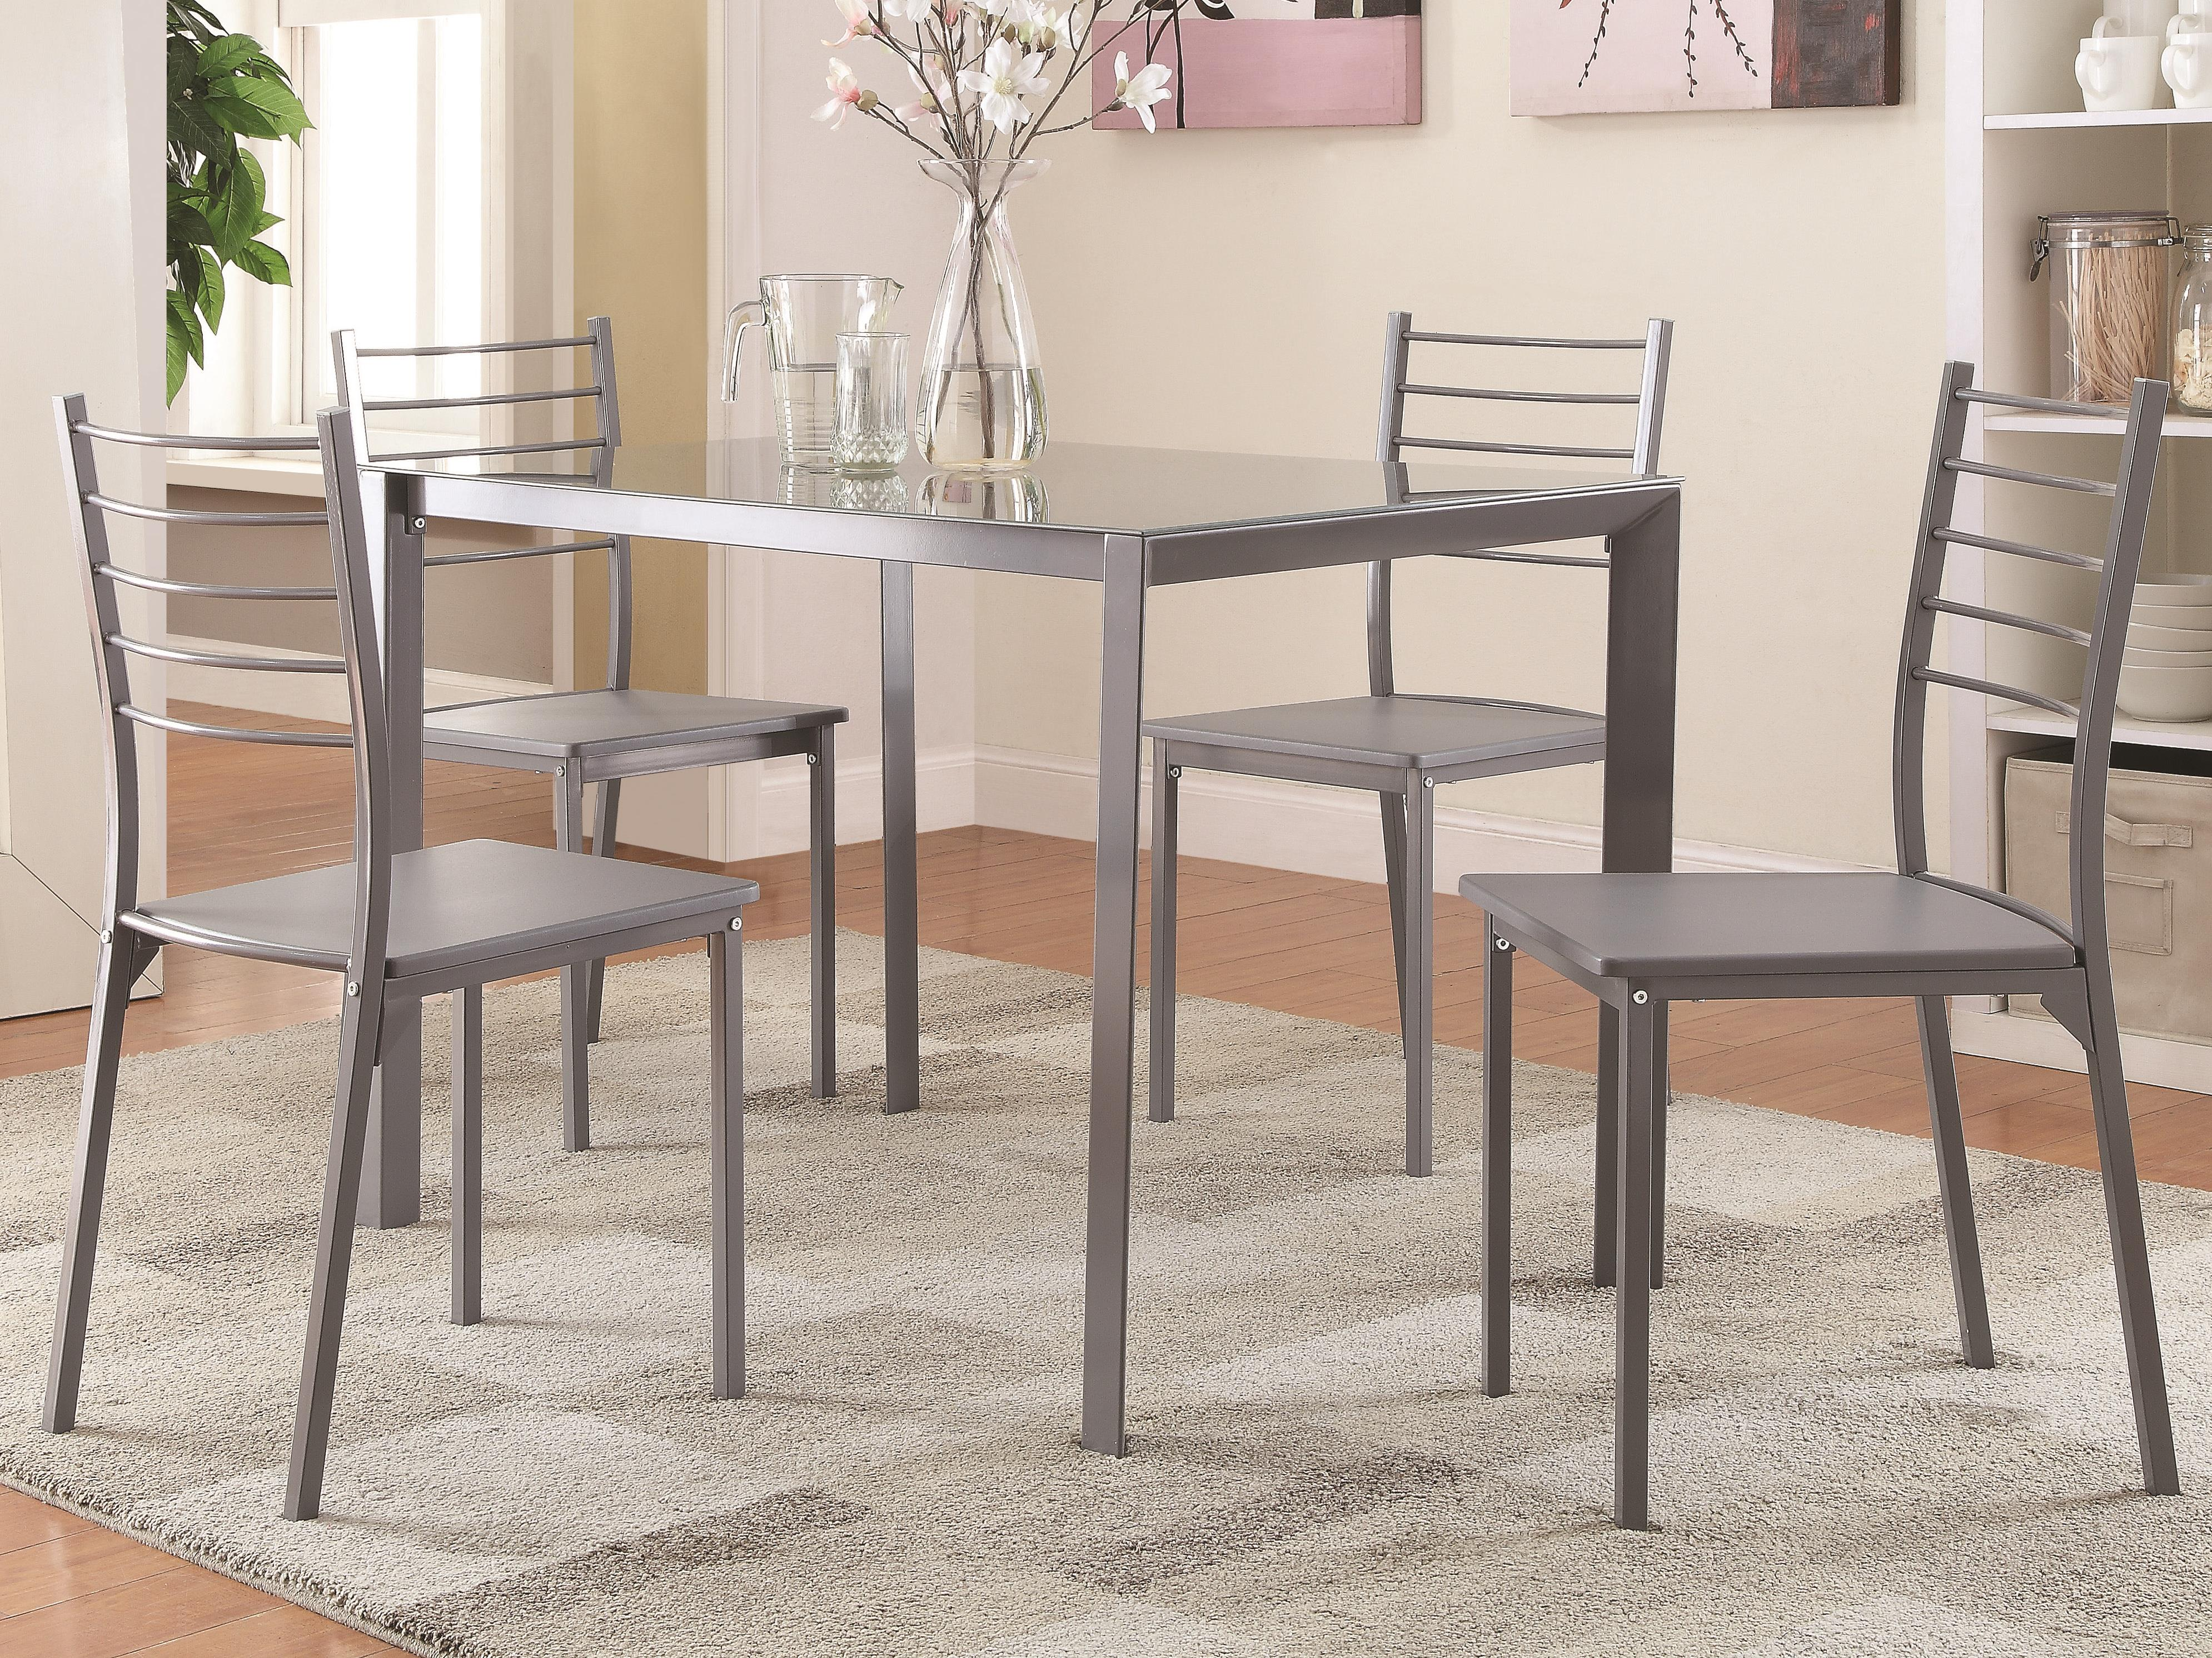 Transitional Glass Bar Height Table and Chair Set